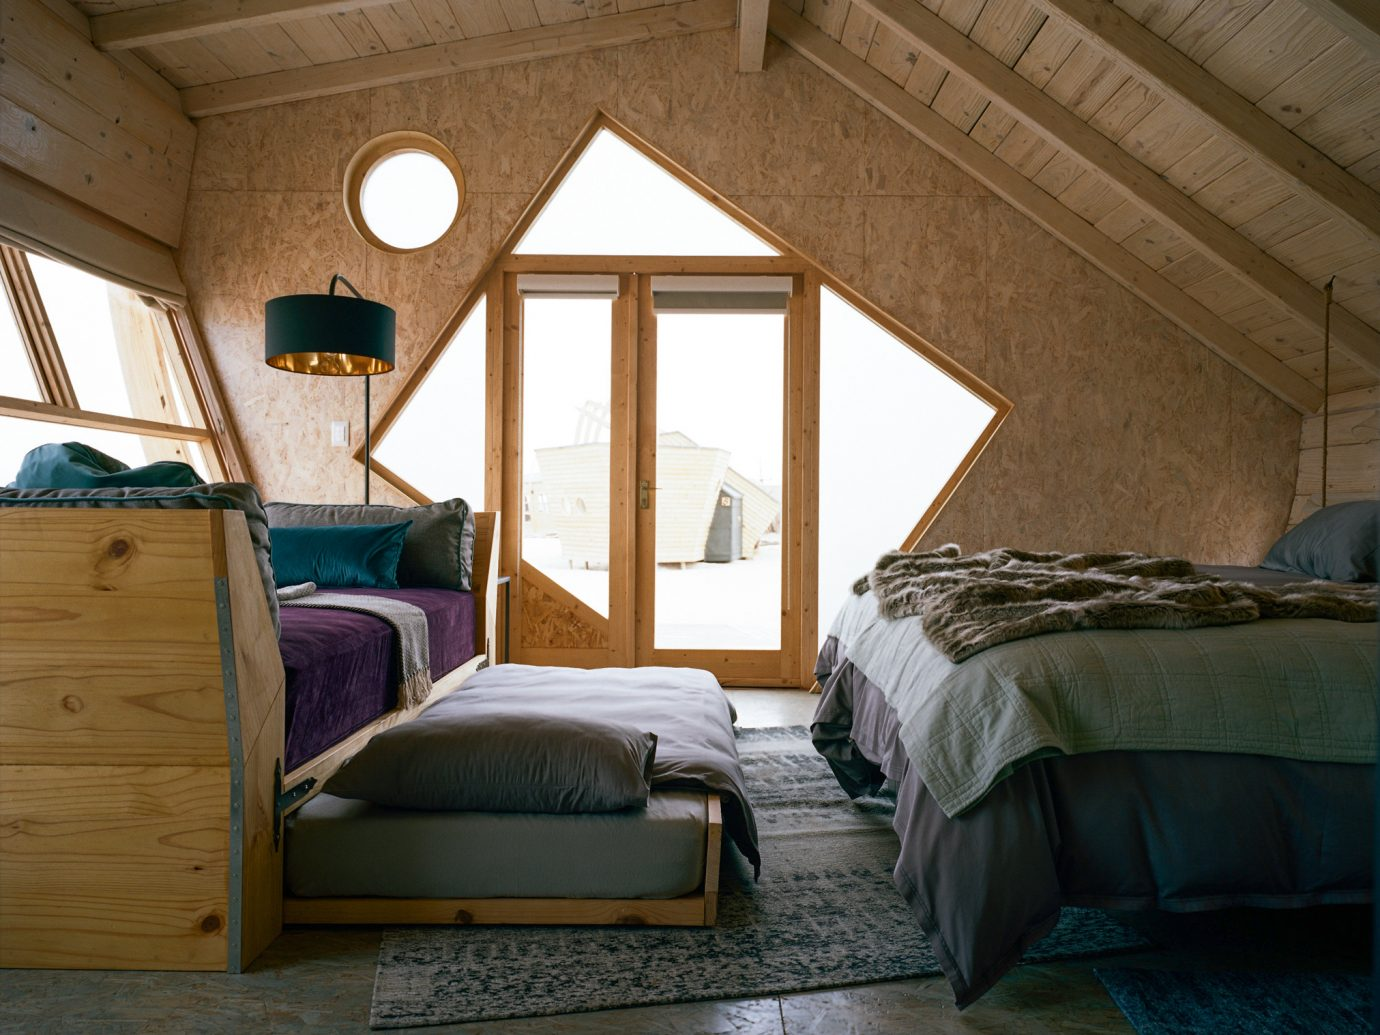 bedroom at Shipwreck Lodge